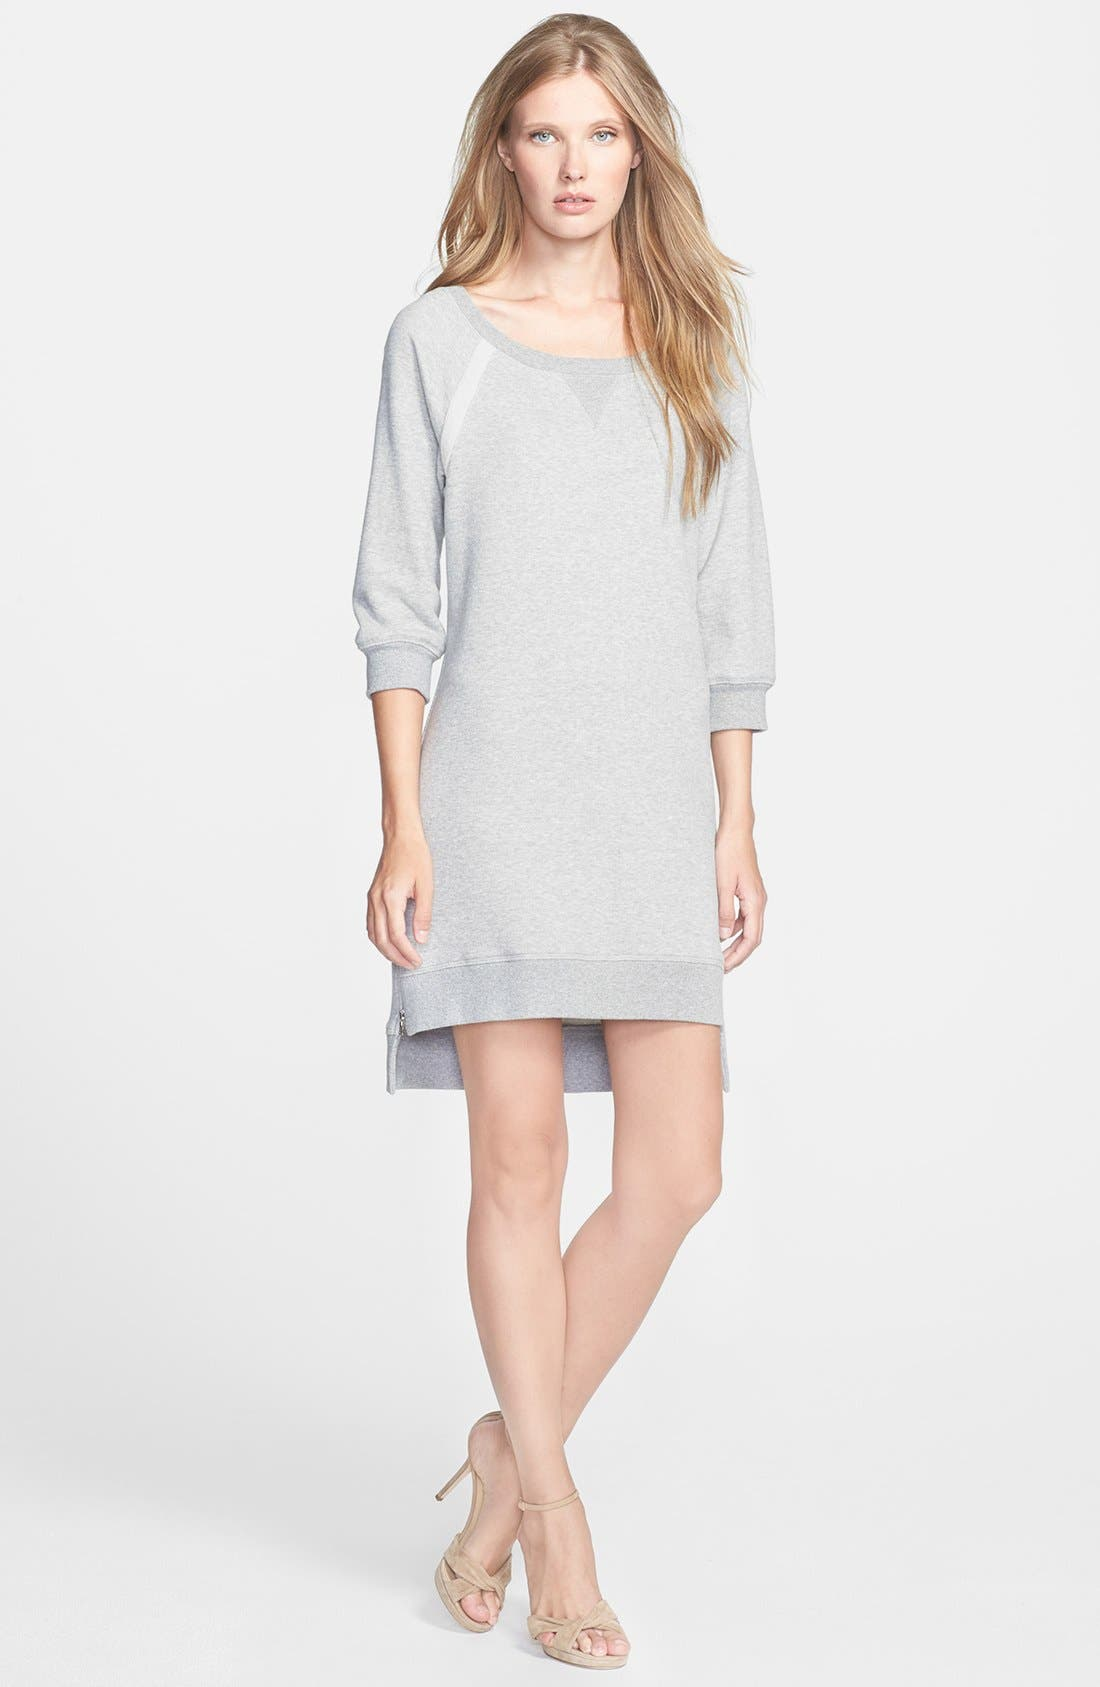 Alternate Image 1 Selected - Trina Turk 'Venecia' Terry Sweatshirt Dress